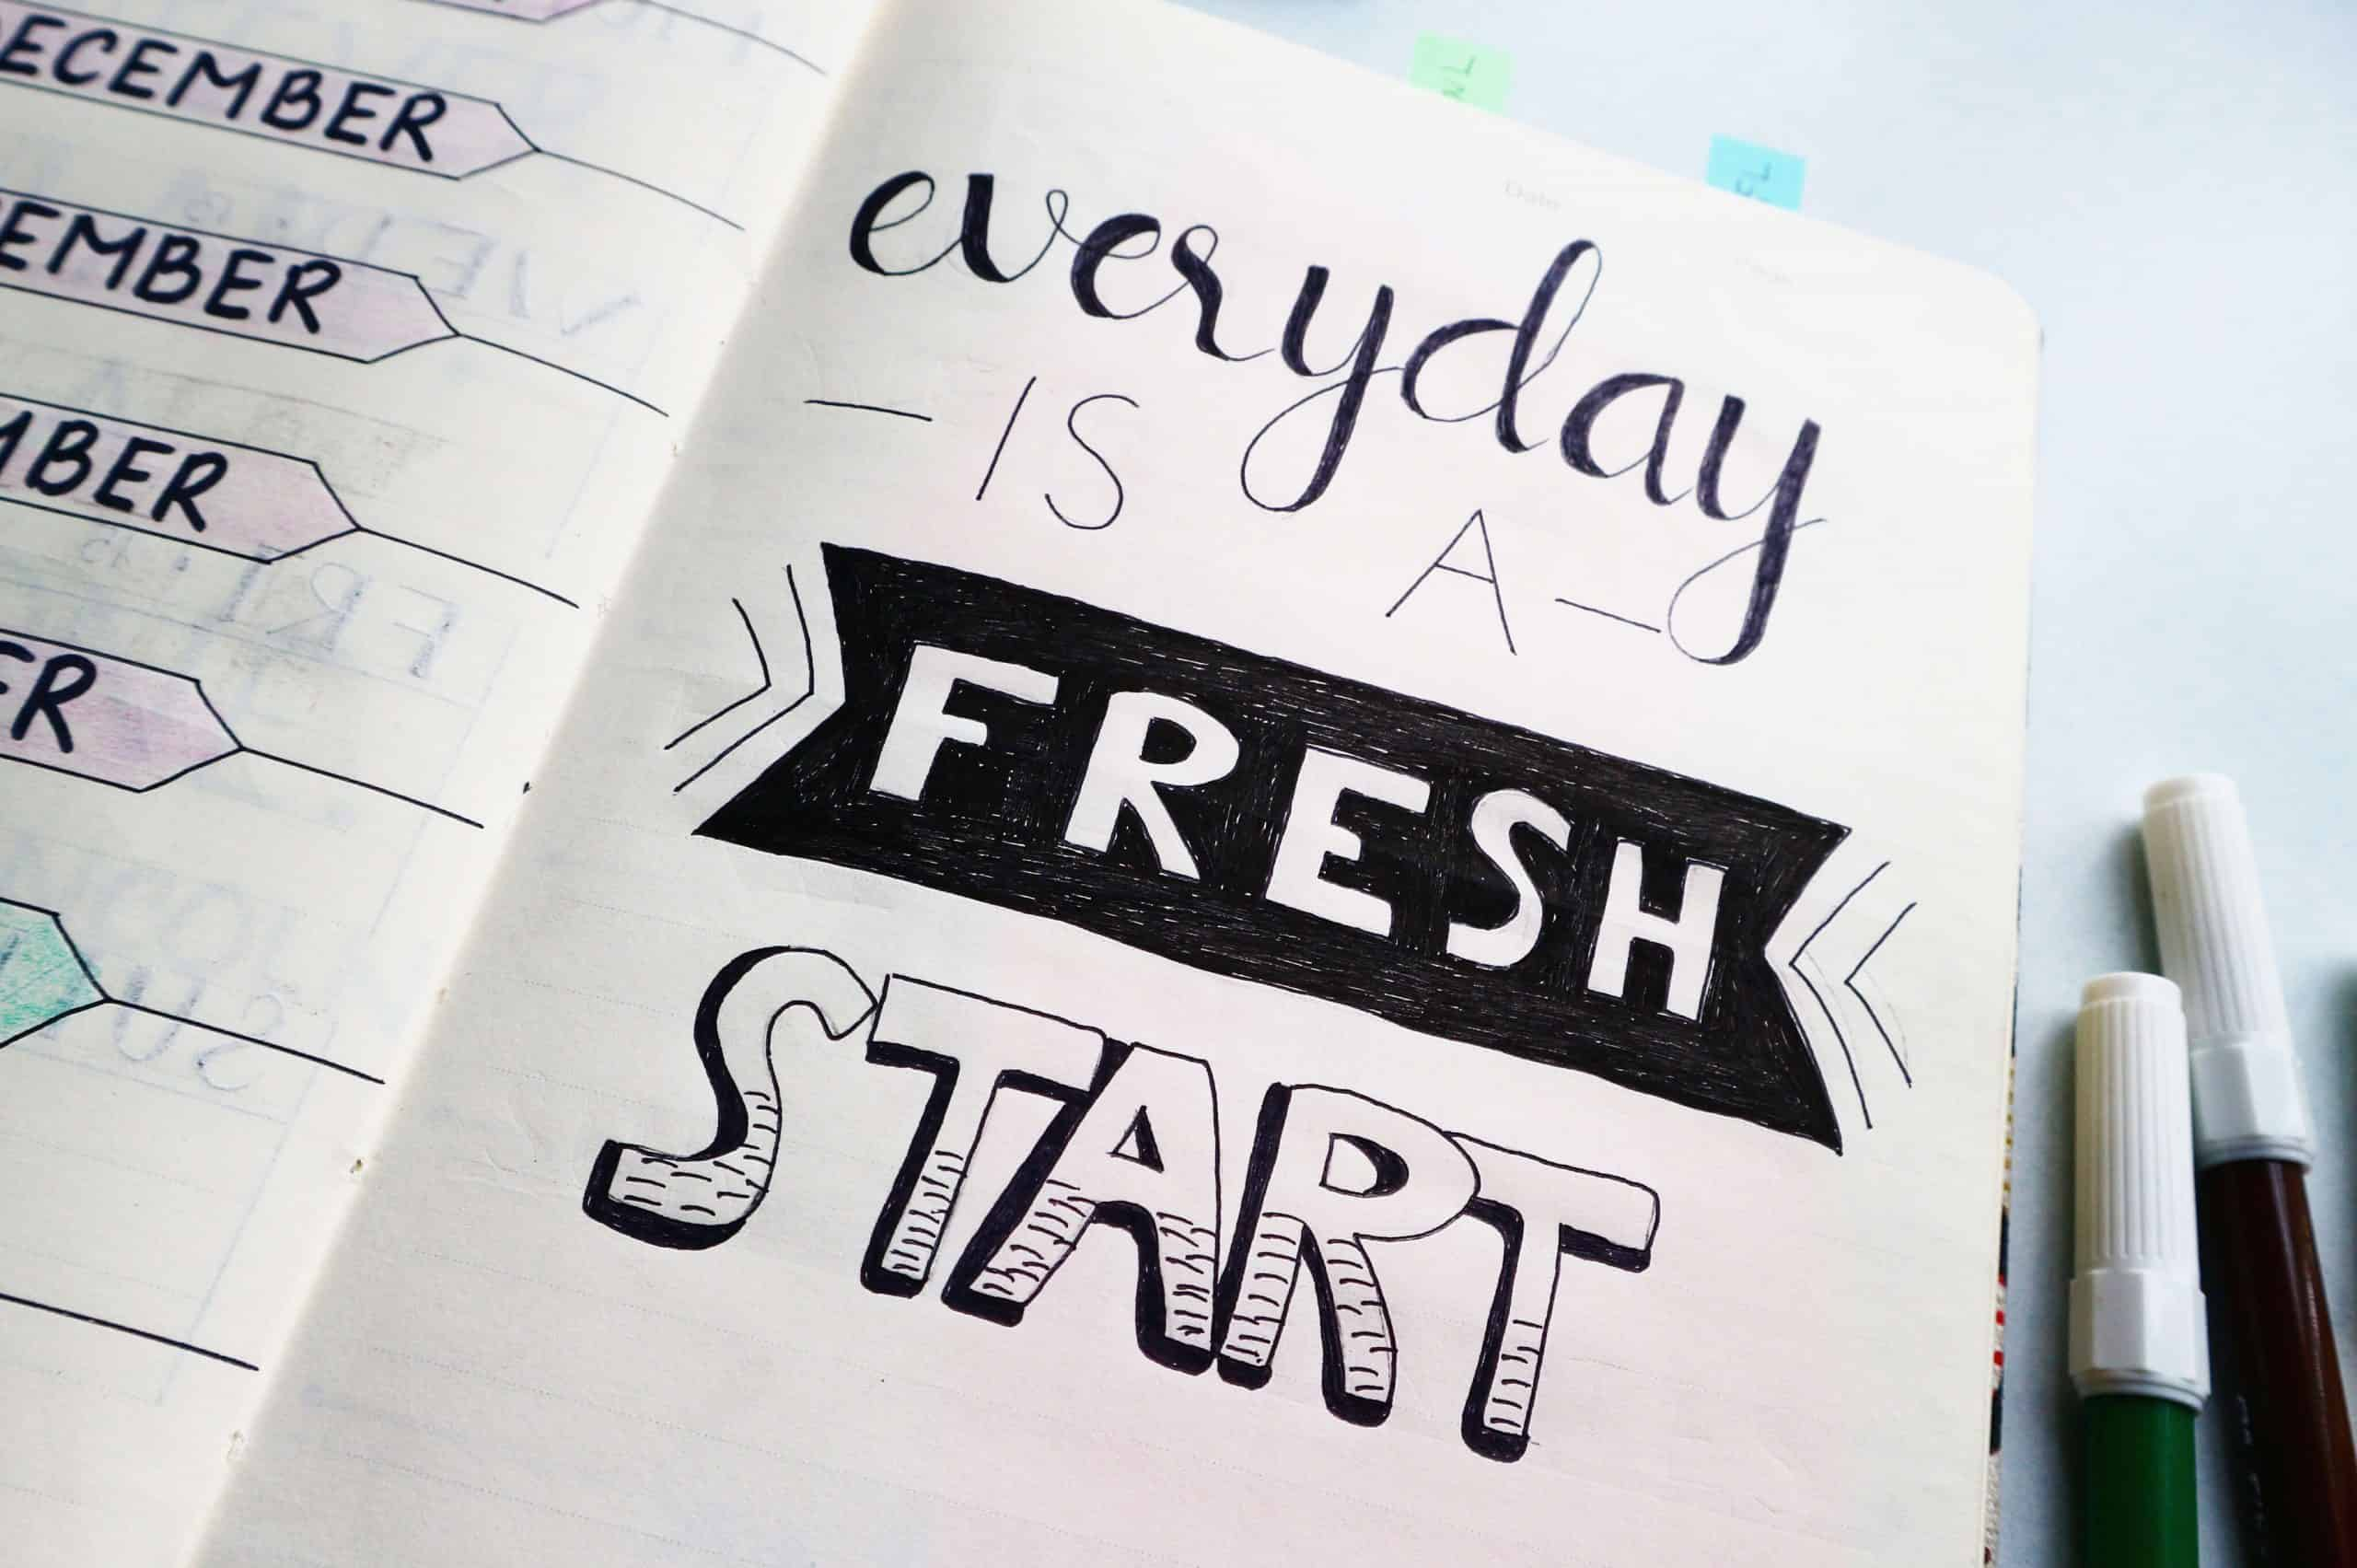 Five Year Goals - Every Day Is a Fresh Start